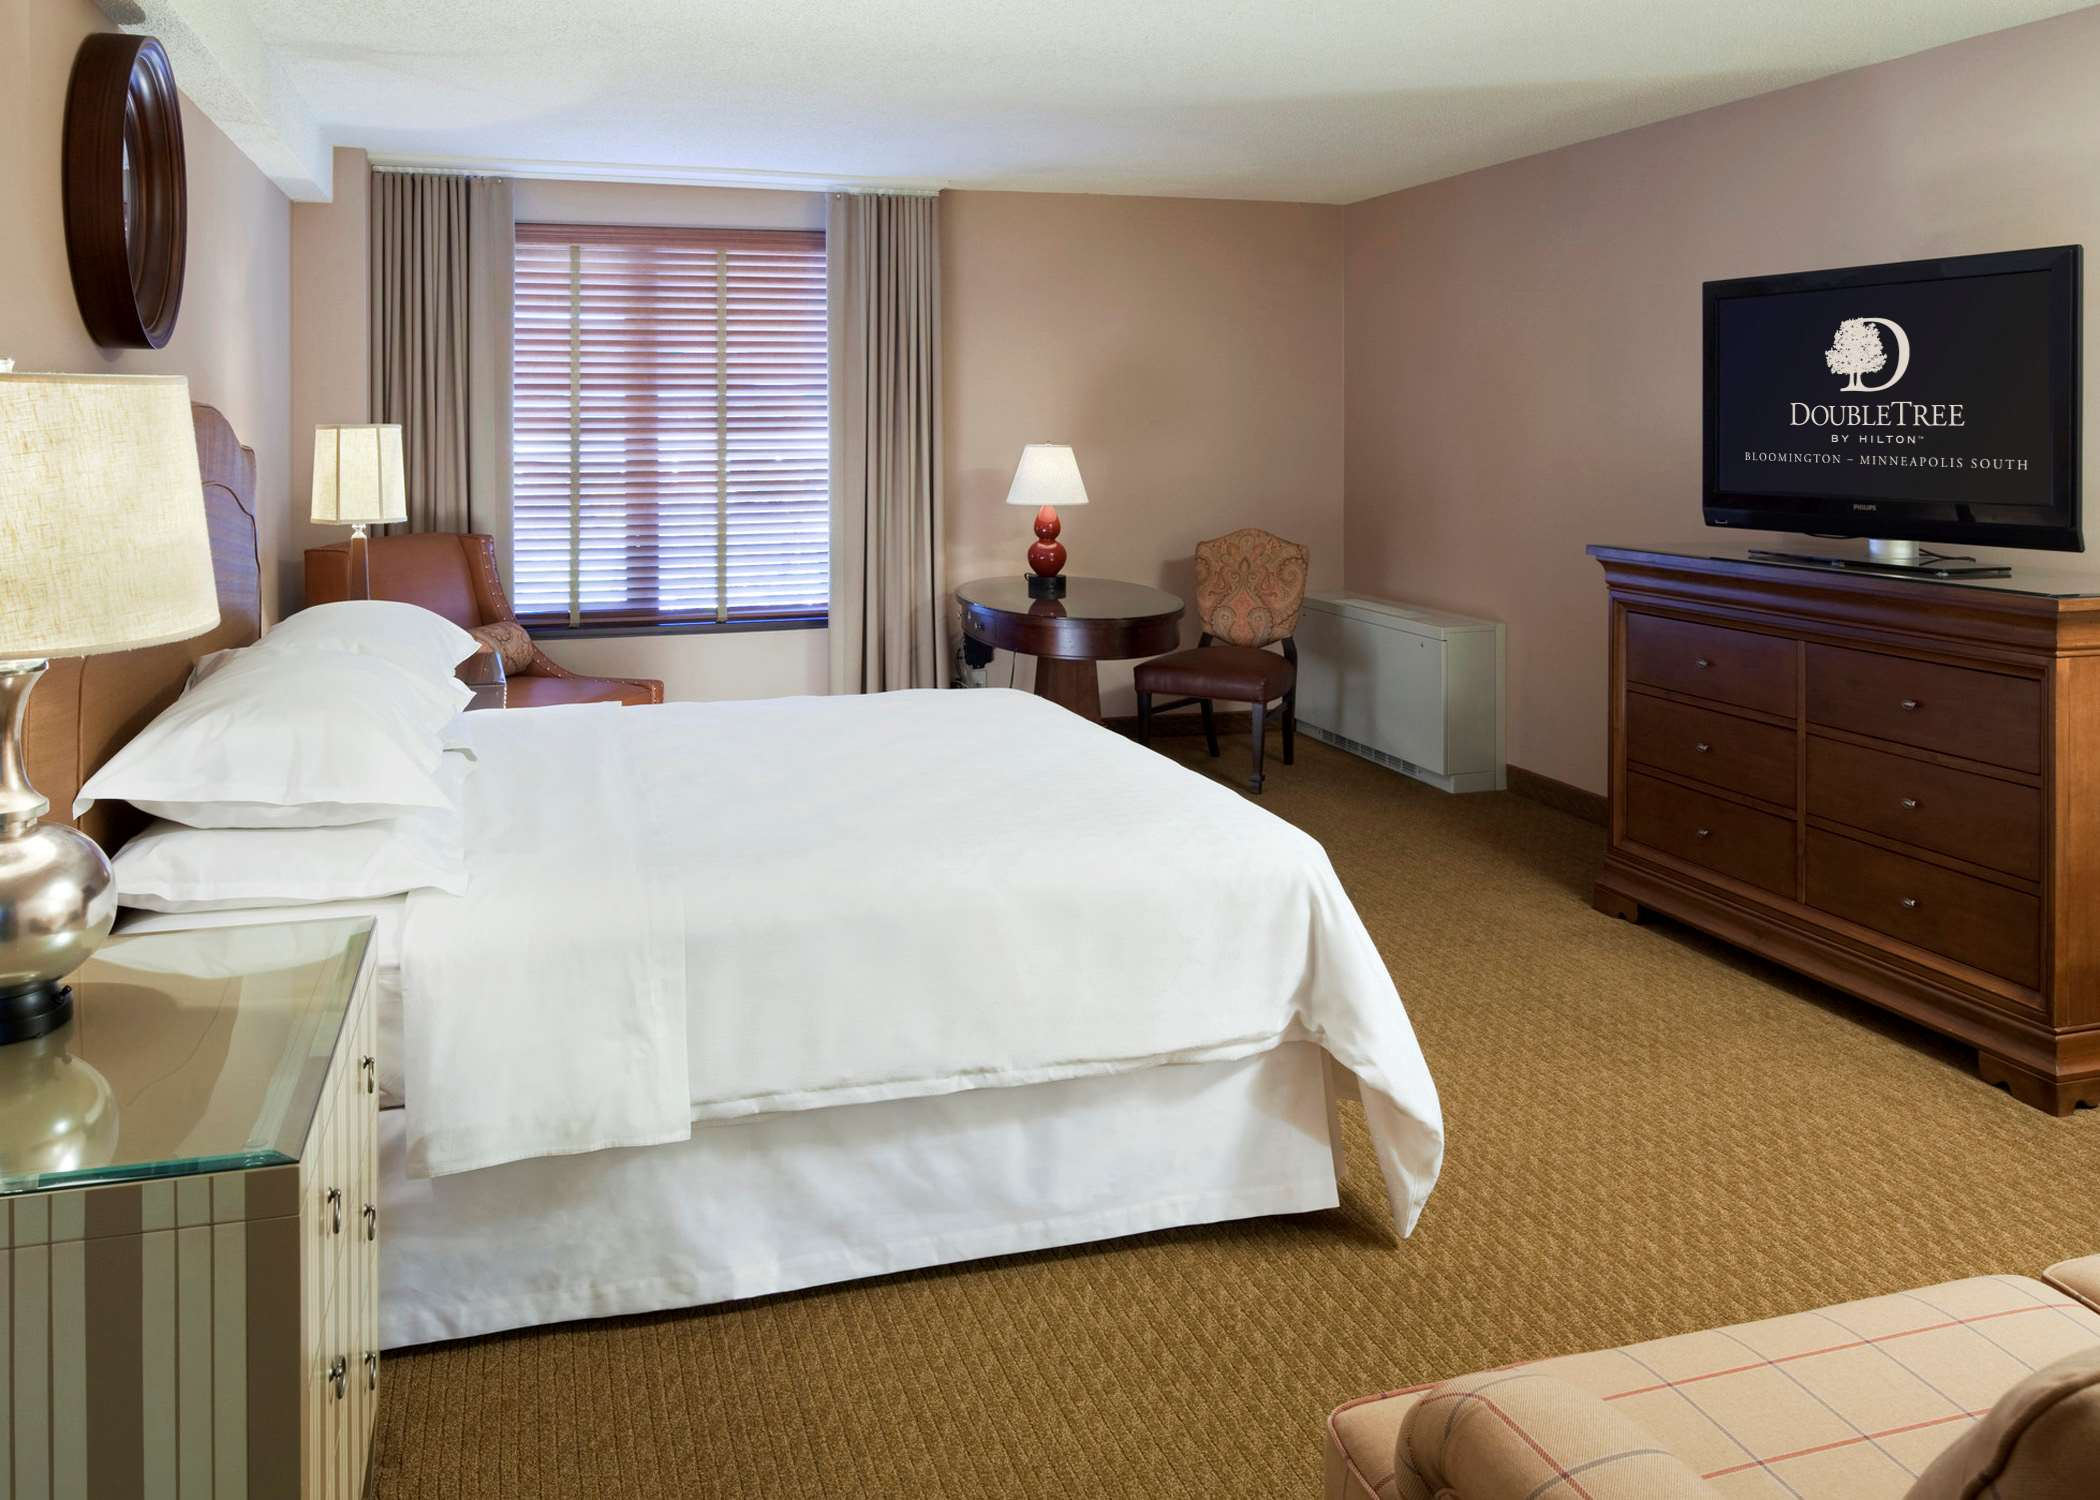 DoubleTree by Hilton Hotel Bloomington - Minneapolis South image 8